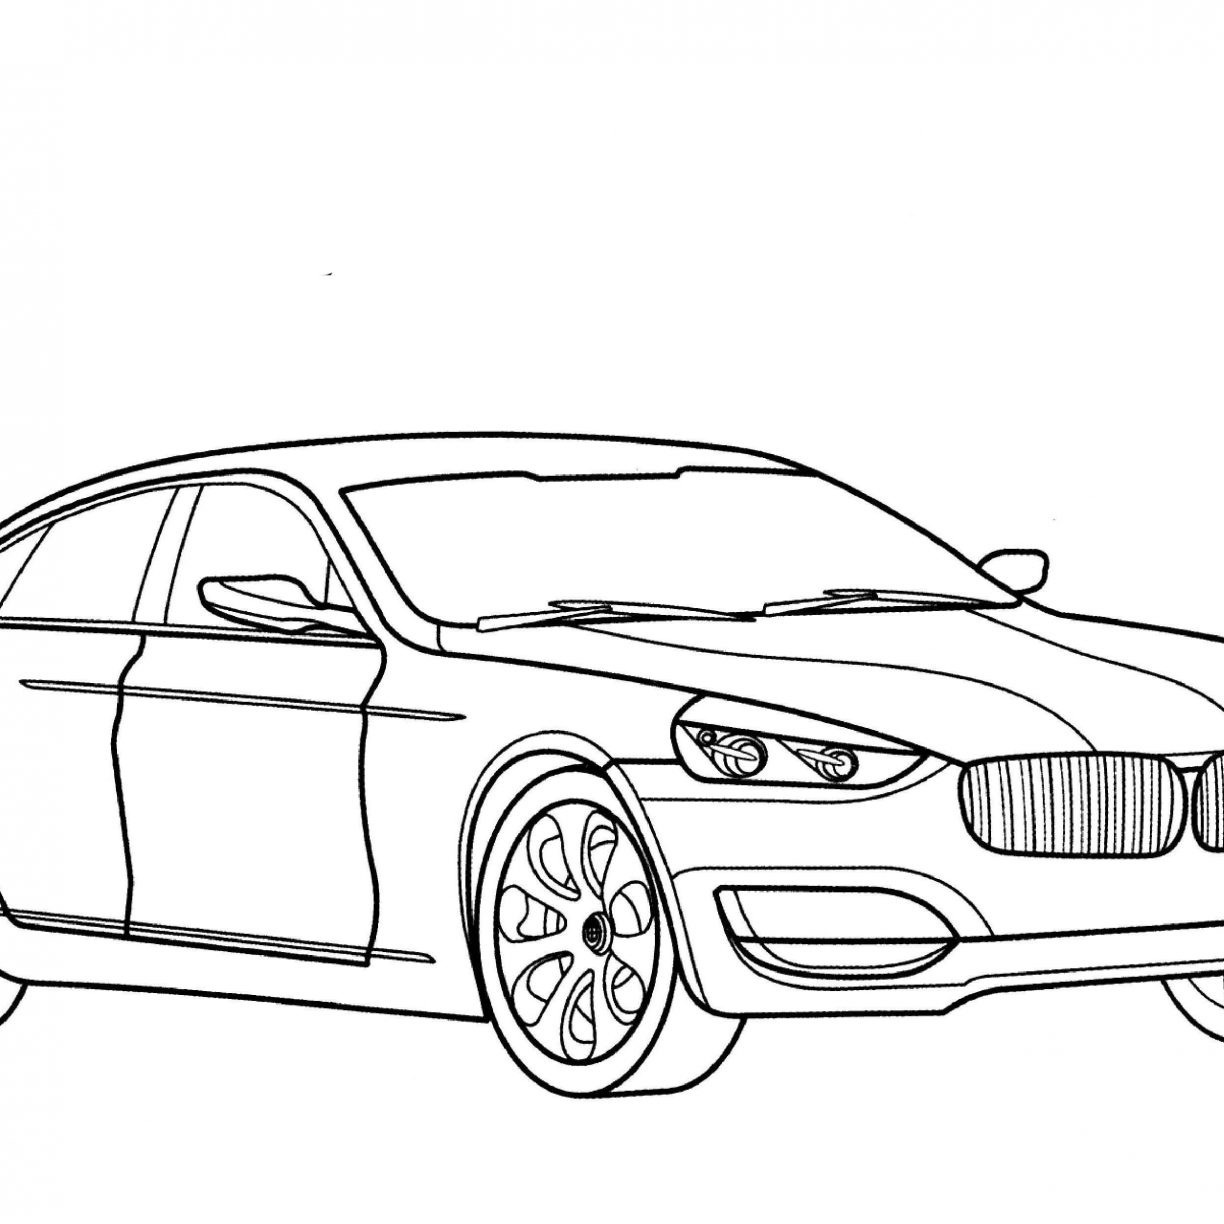 Bmw Coloring Pages At Getcolorings